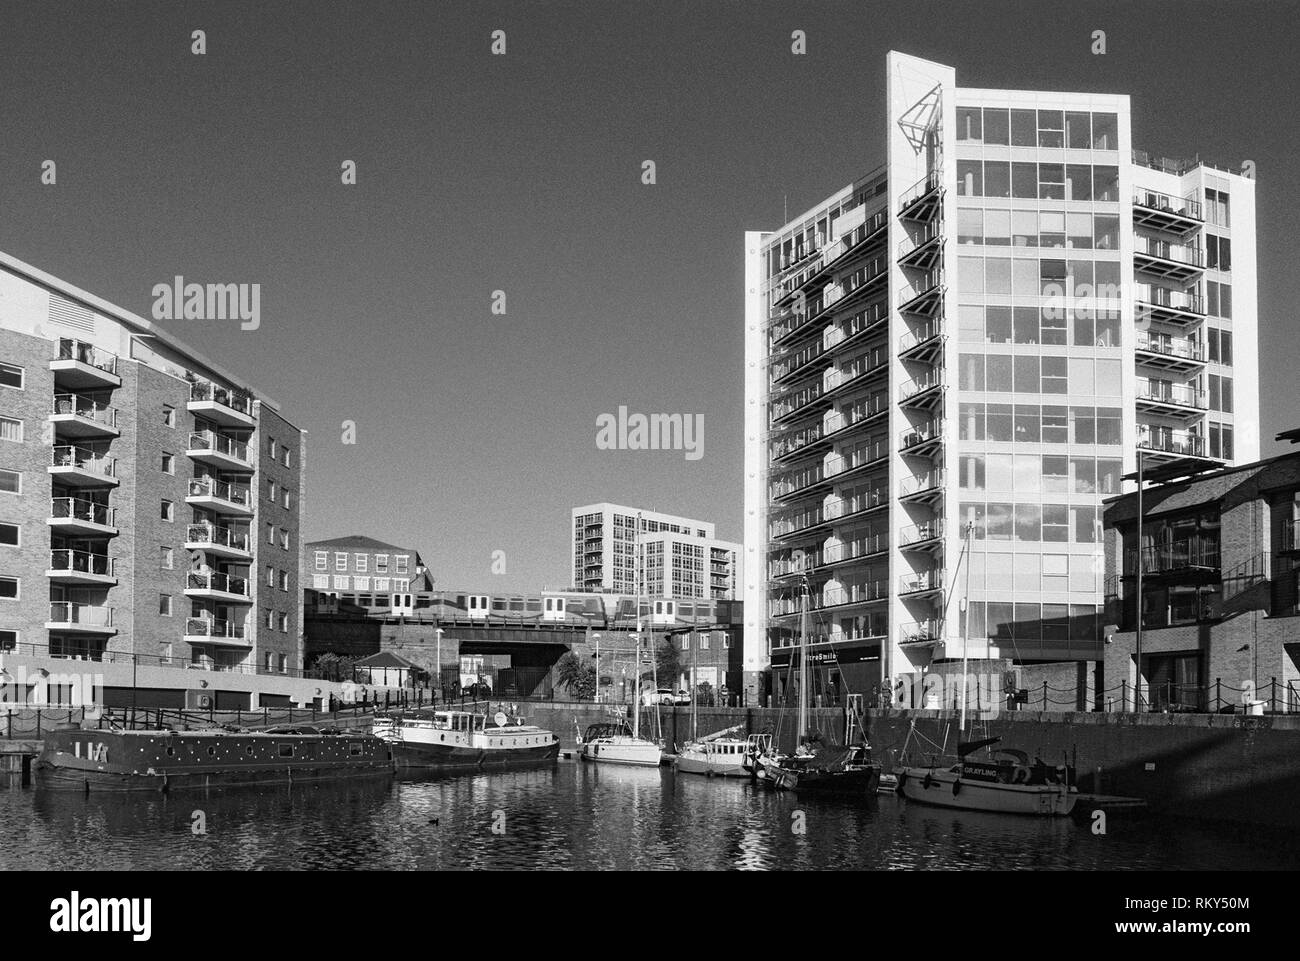 Limehouse Basin in London's Docklands district, UK, with boats and the Docklands Light Railway - Stock Image